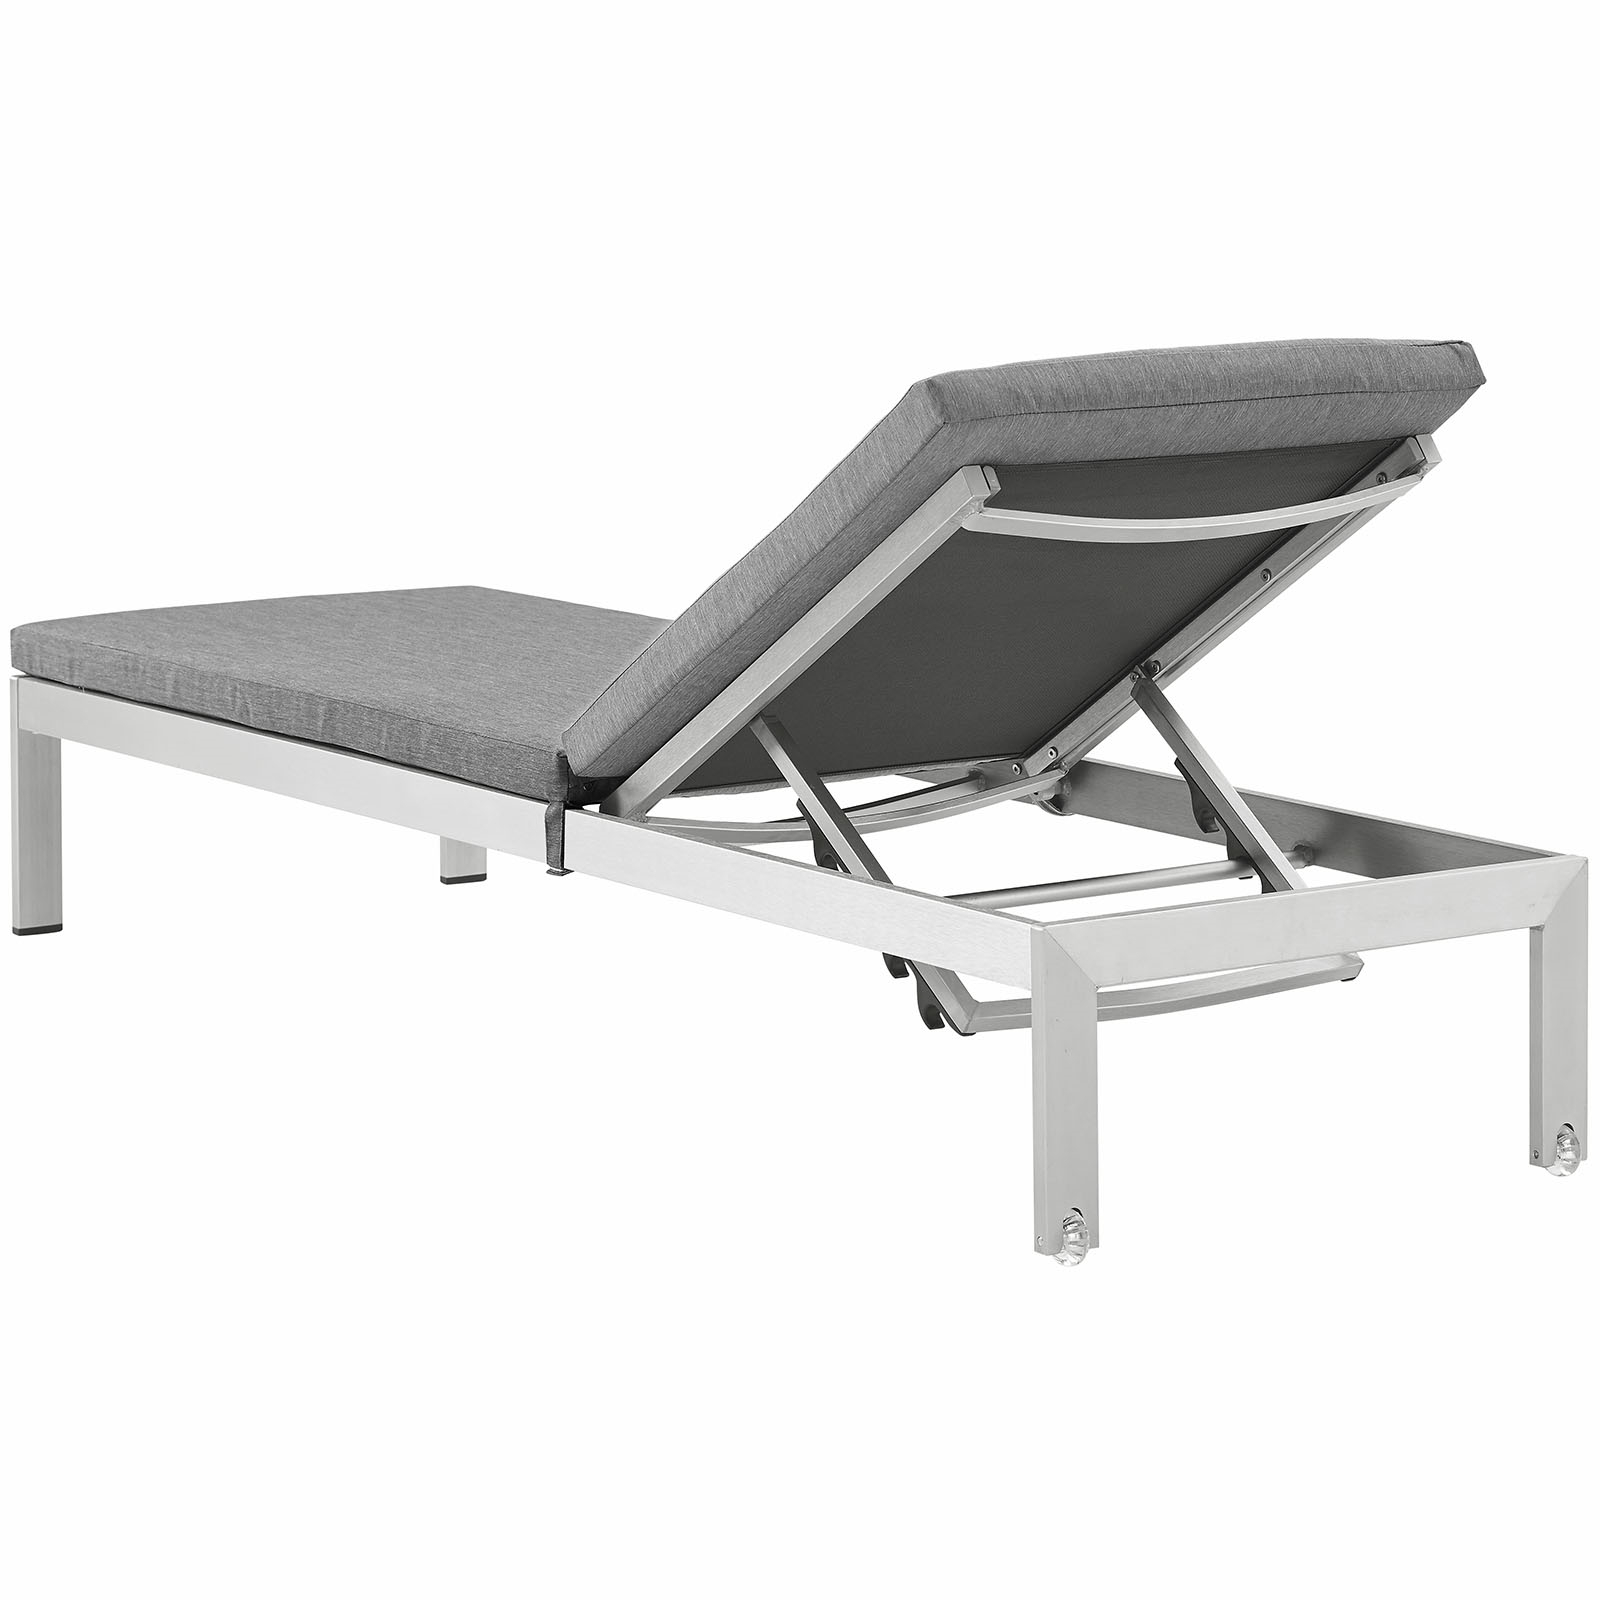 Shore Aluminum Outdoor Chaise Lounges With Fashionable Shore Outdoor Patio Aluminum Chaise With Cushions (View 15 of 25)